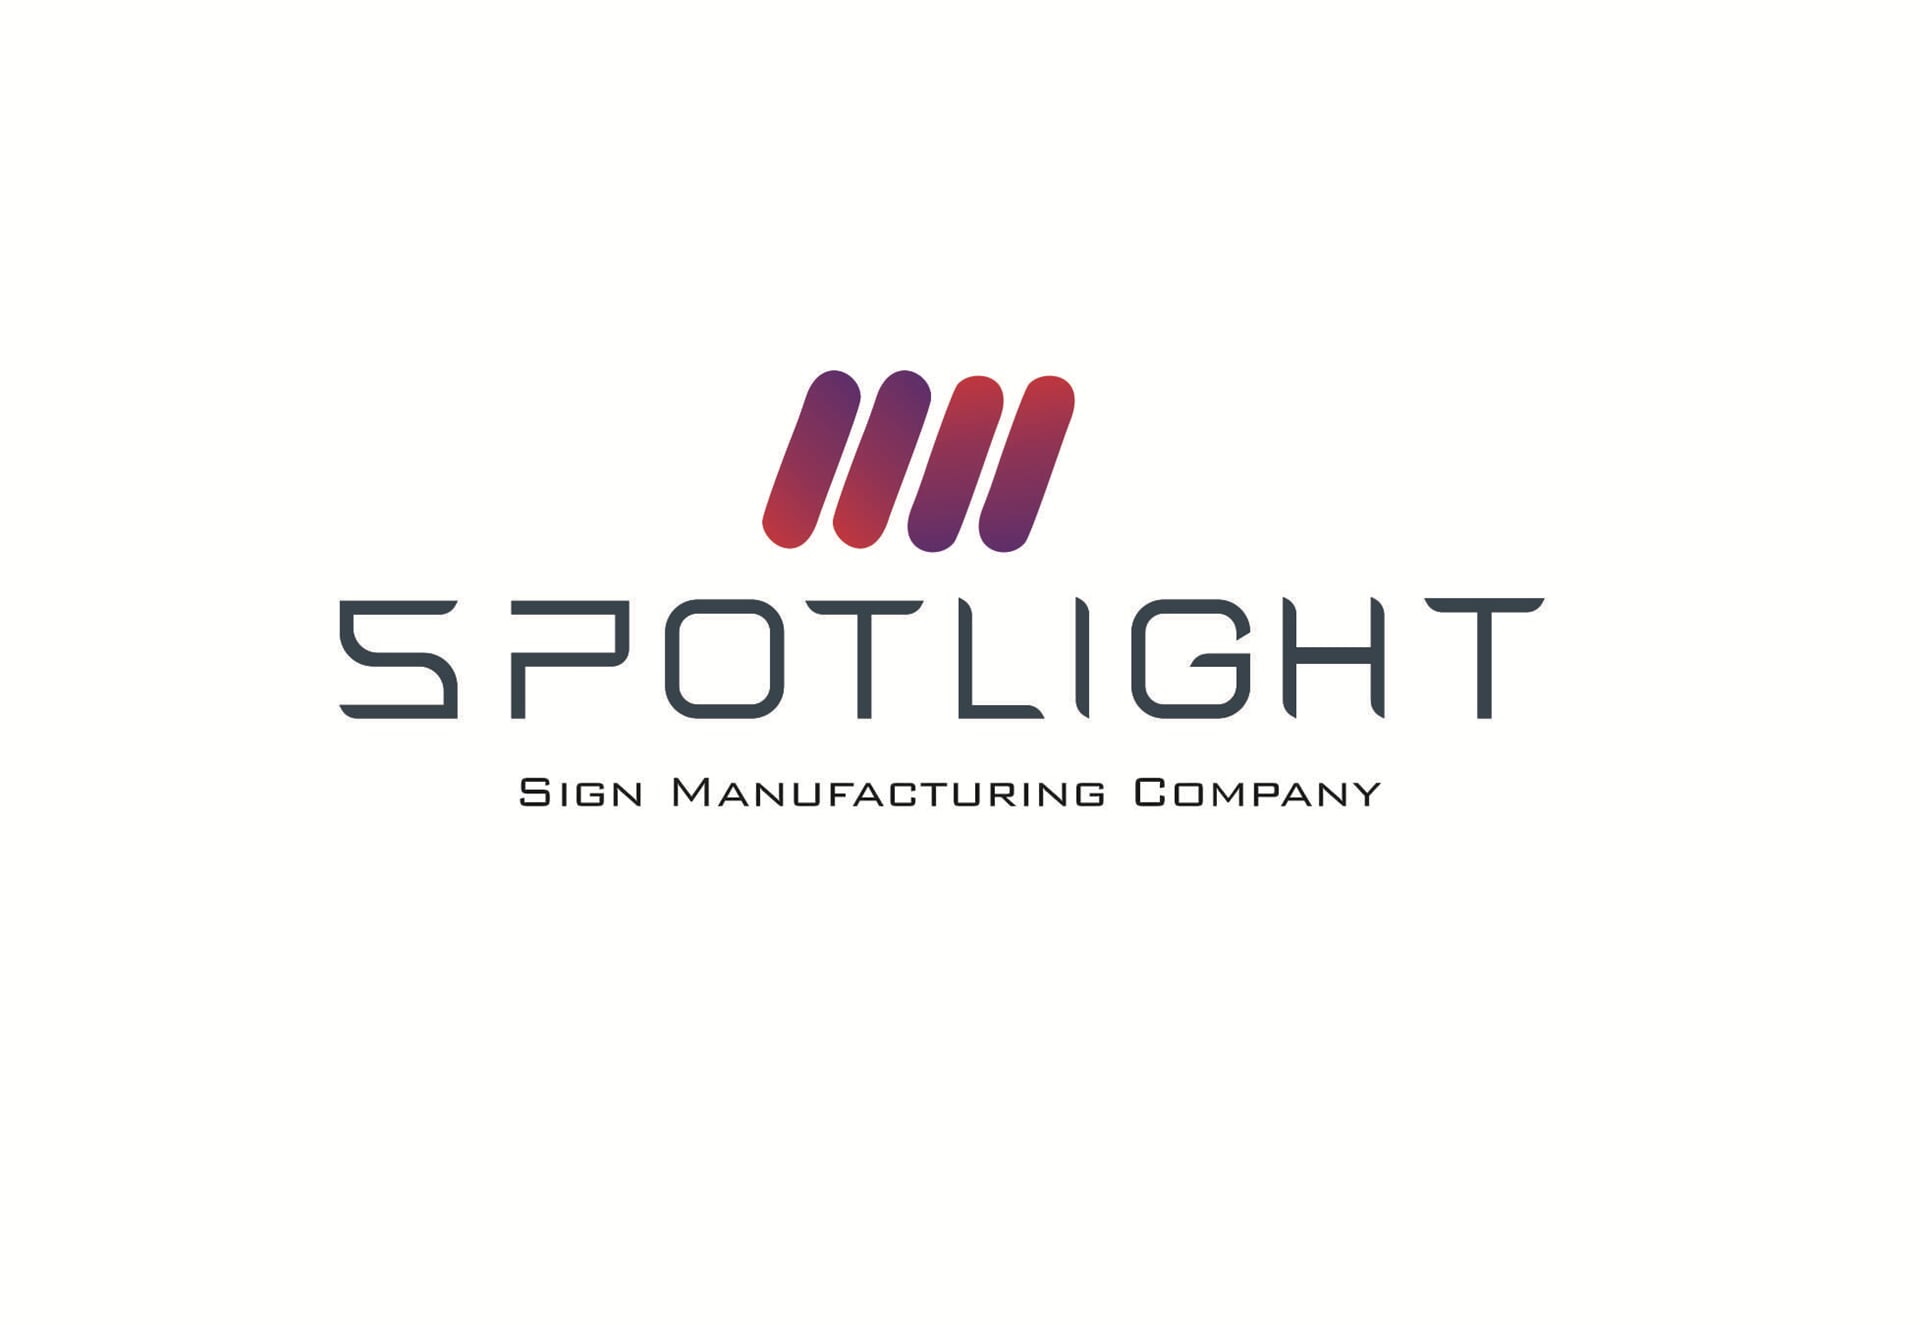 Sign Manufacturing Company